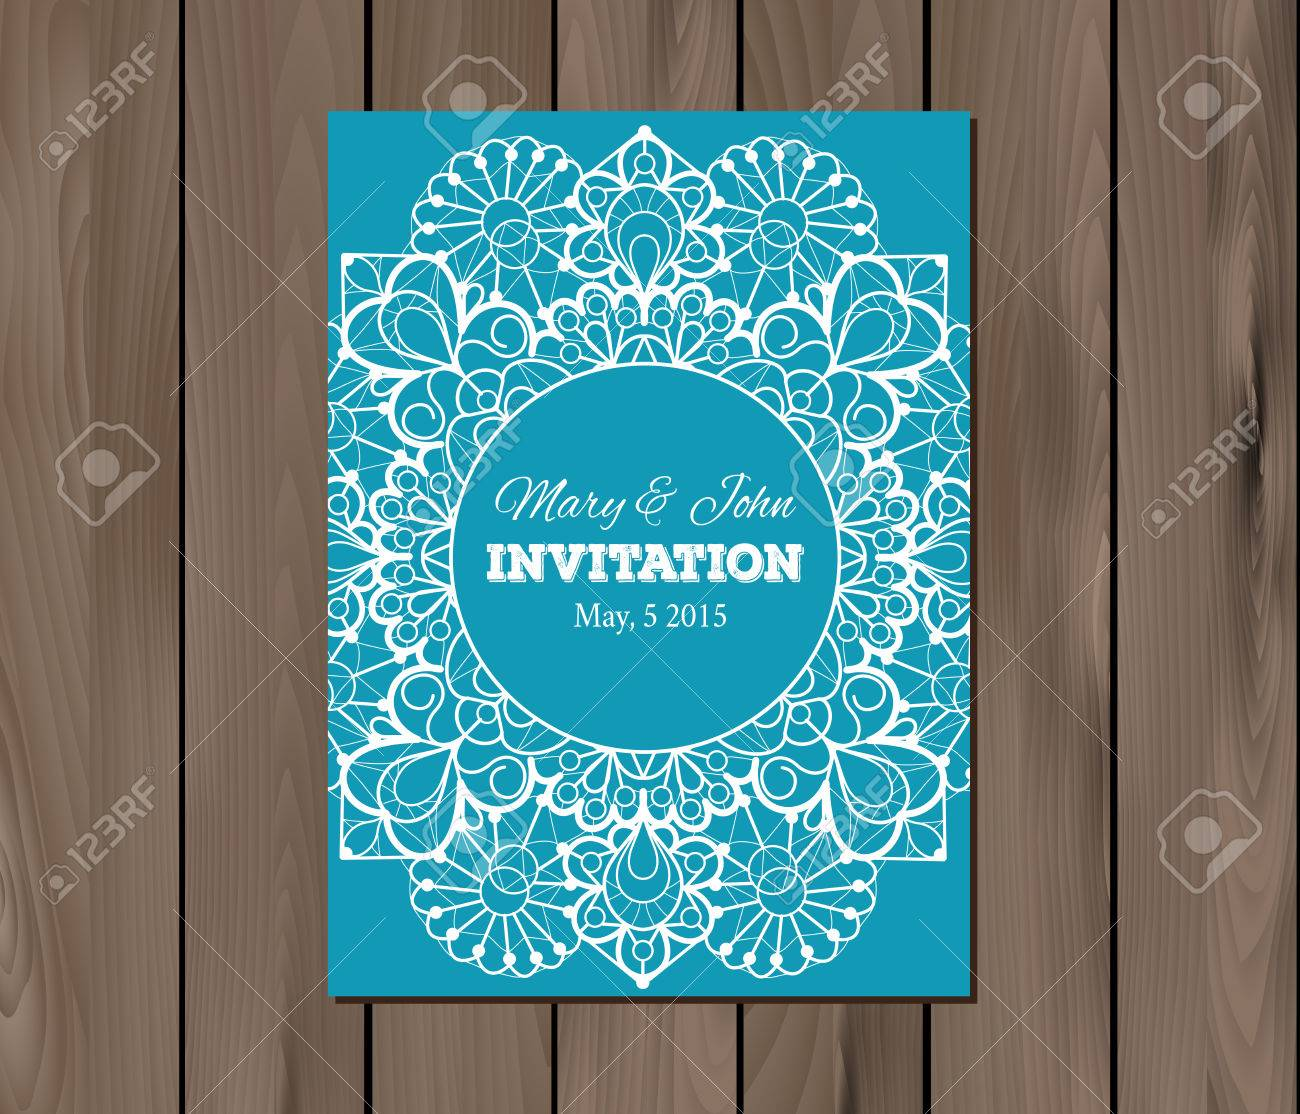 Wedding Invitation Card Template On A Wooden Background Vintage